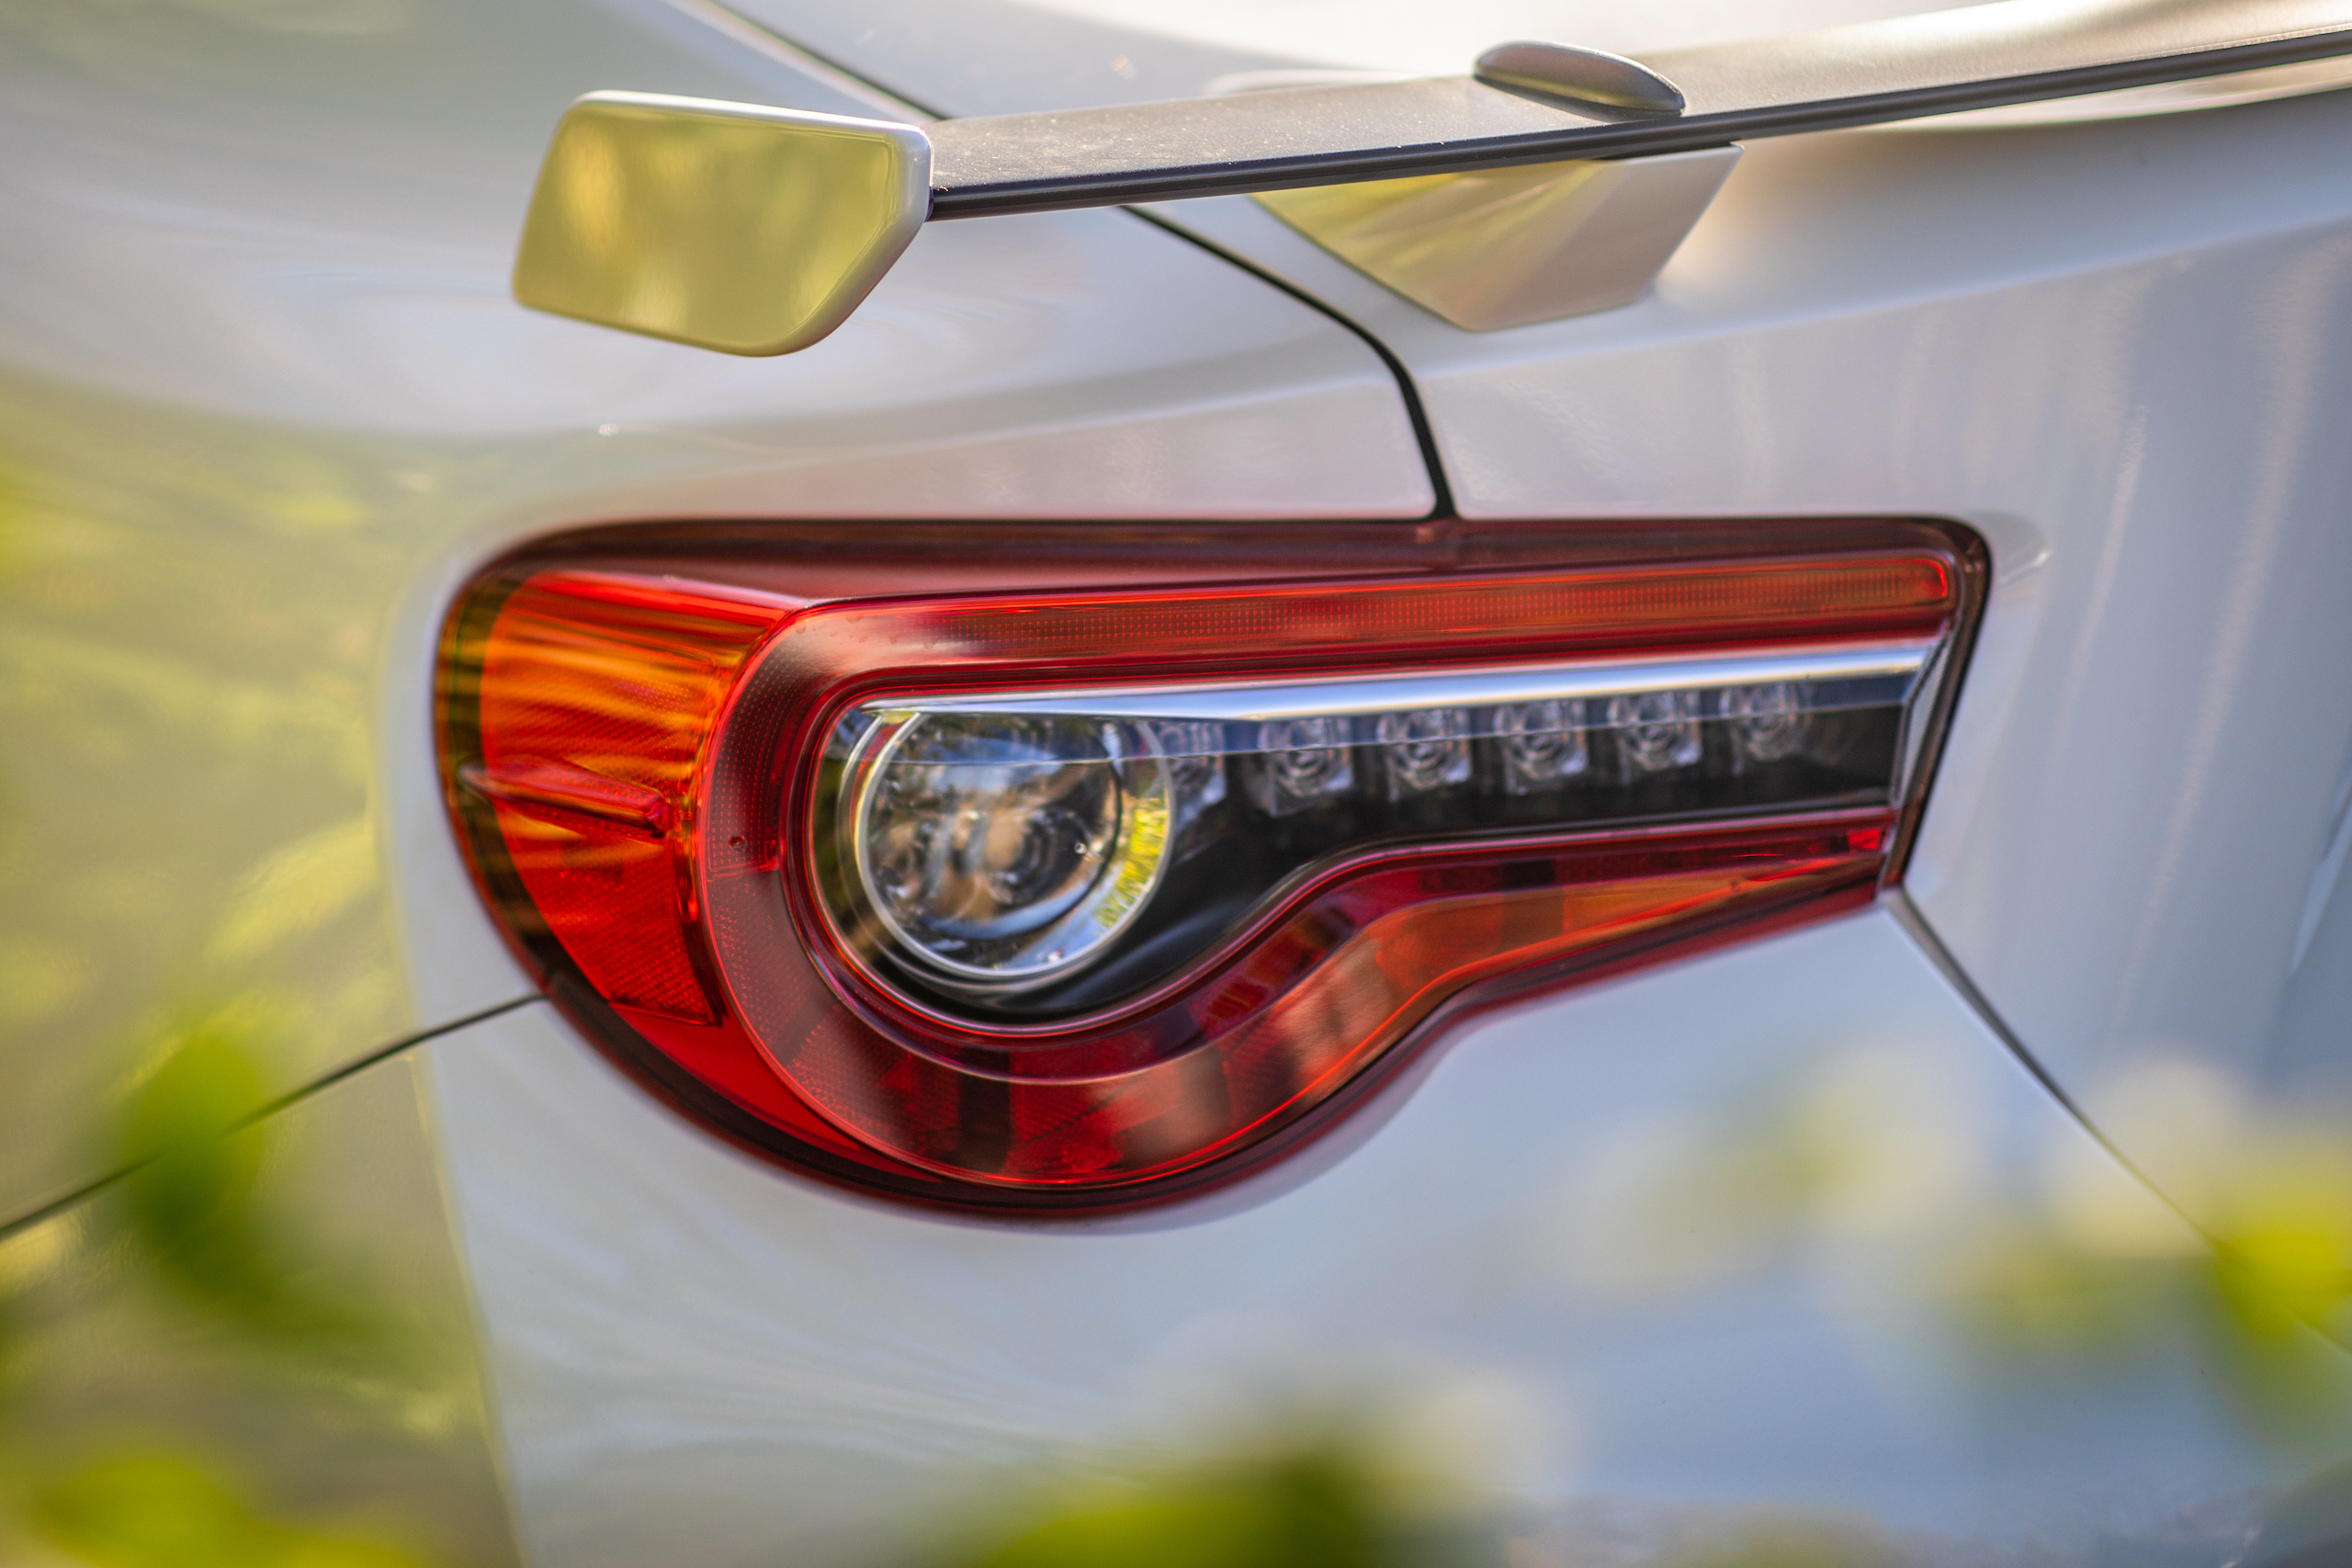 2020 Toyota 86 GT rear wing taillight detail